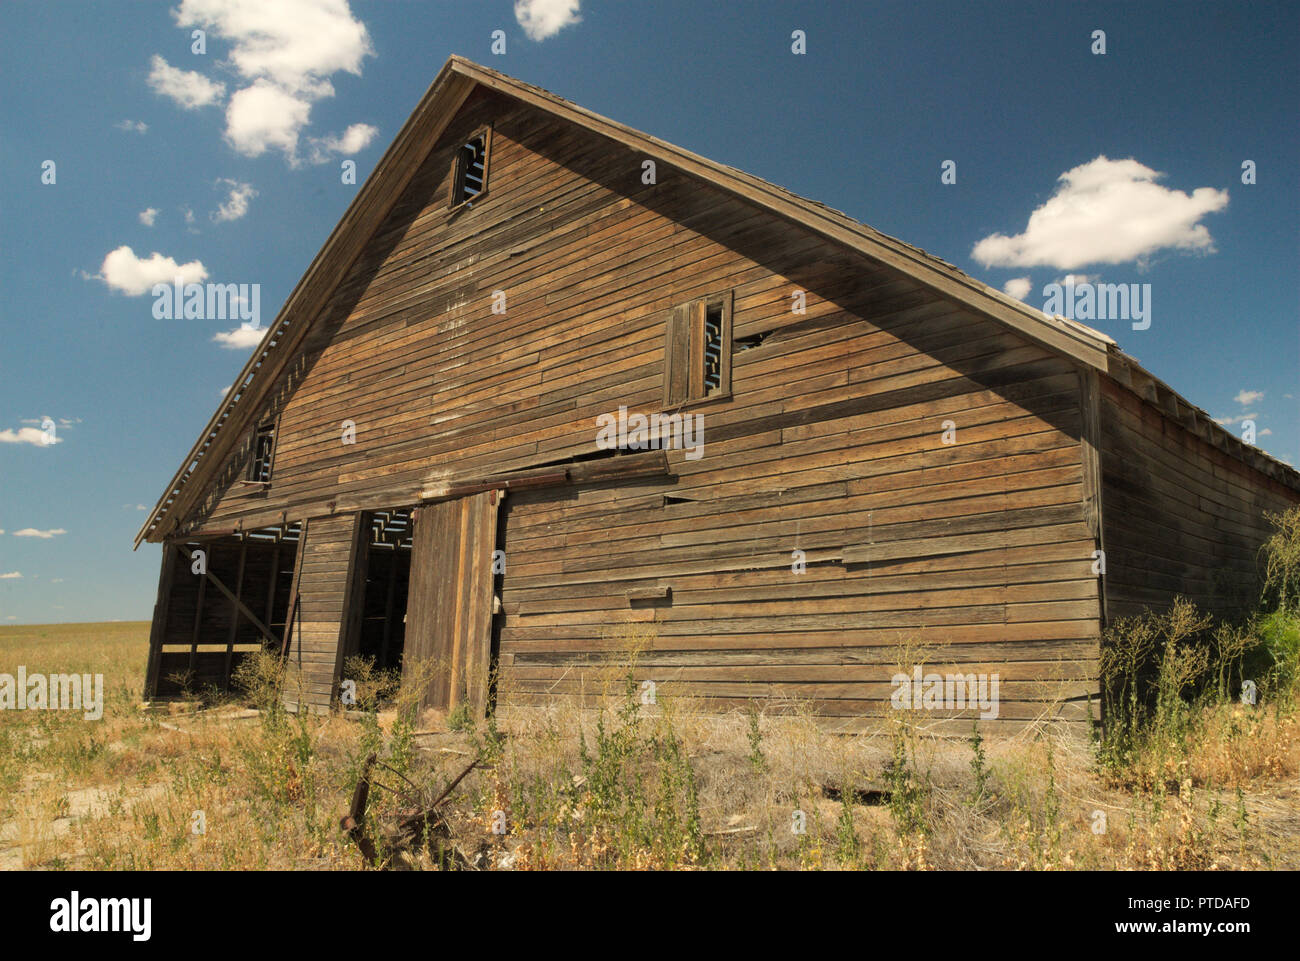 An Old Barn in Central Washington State, USA - Stock Image